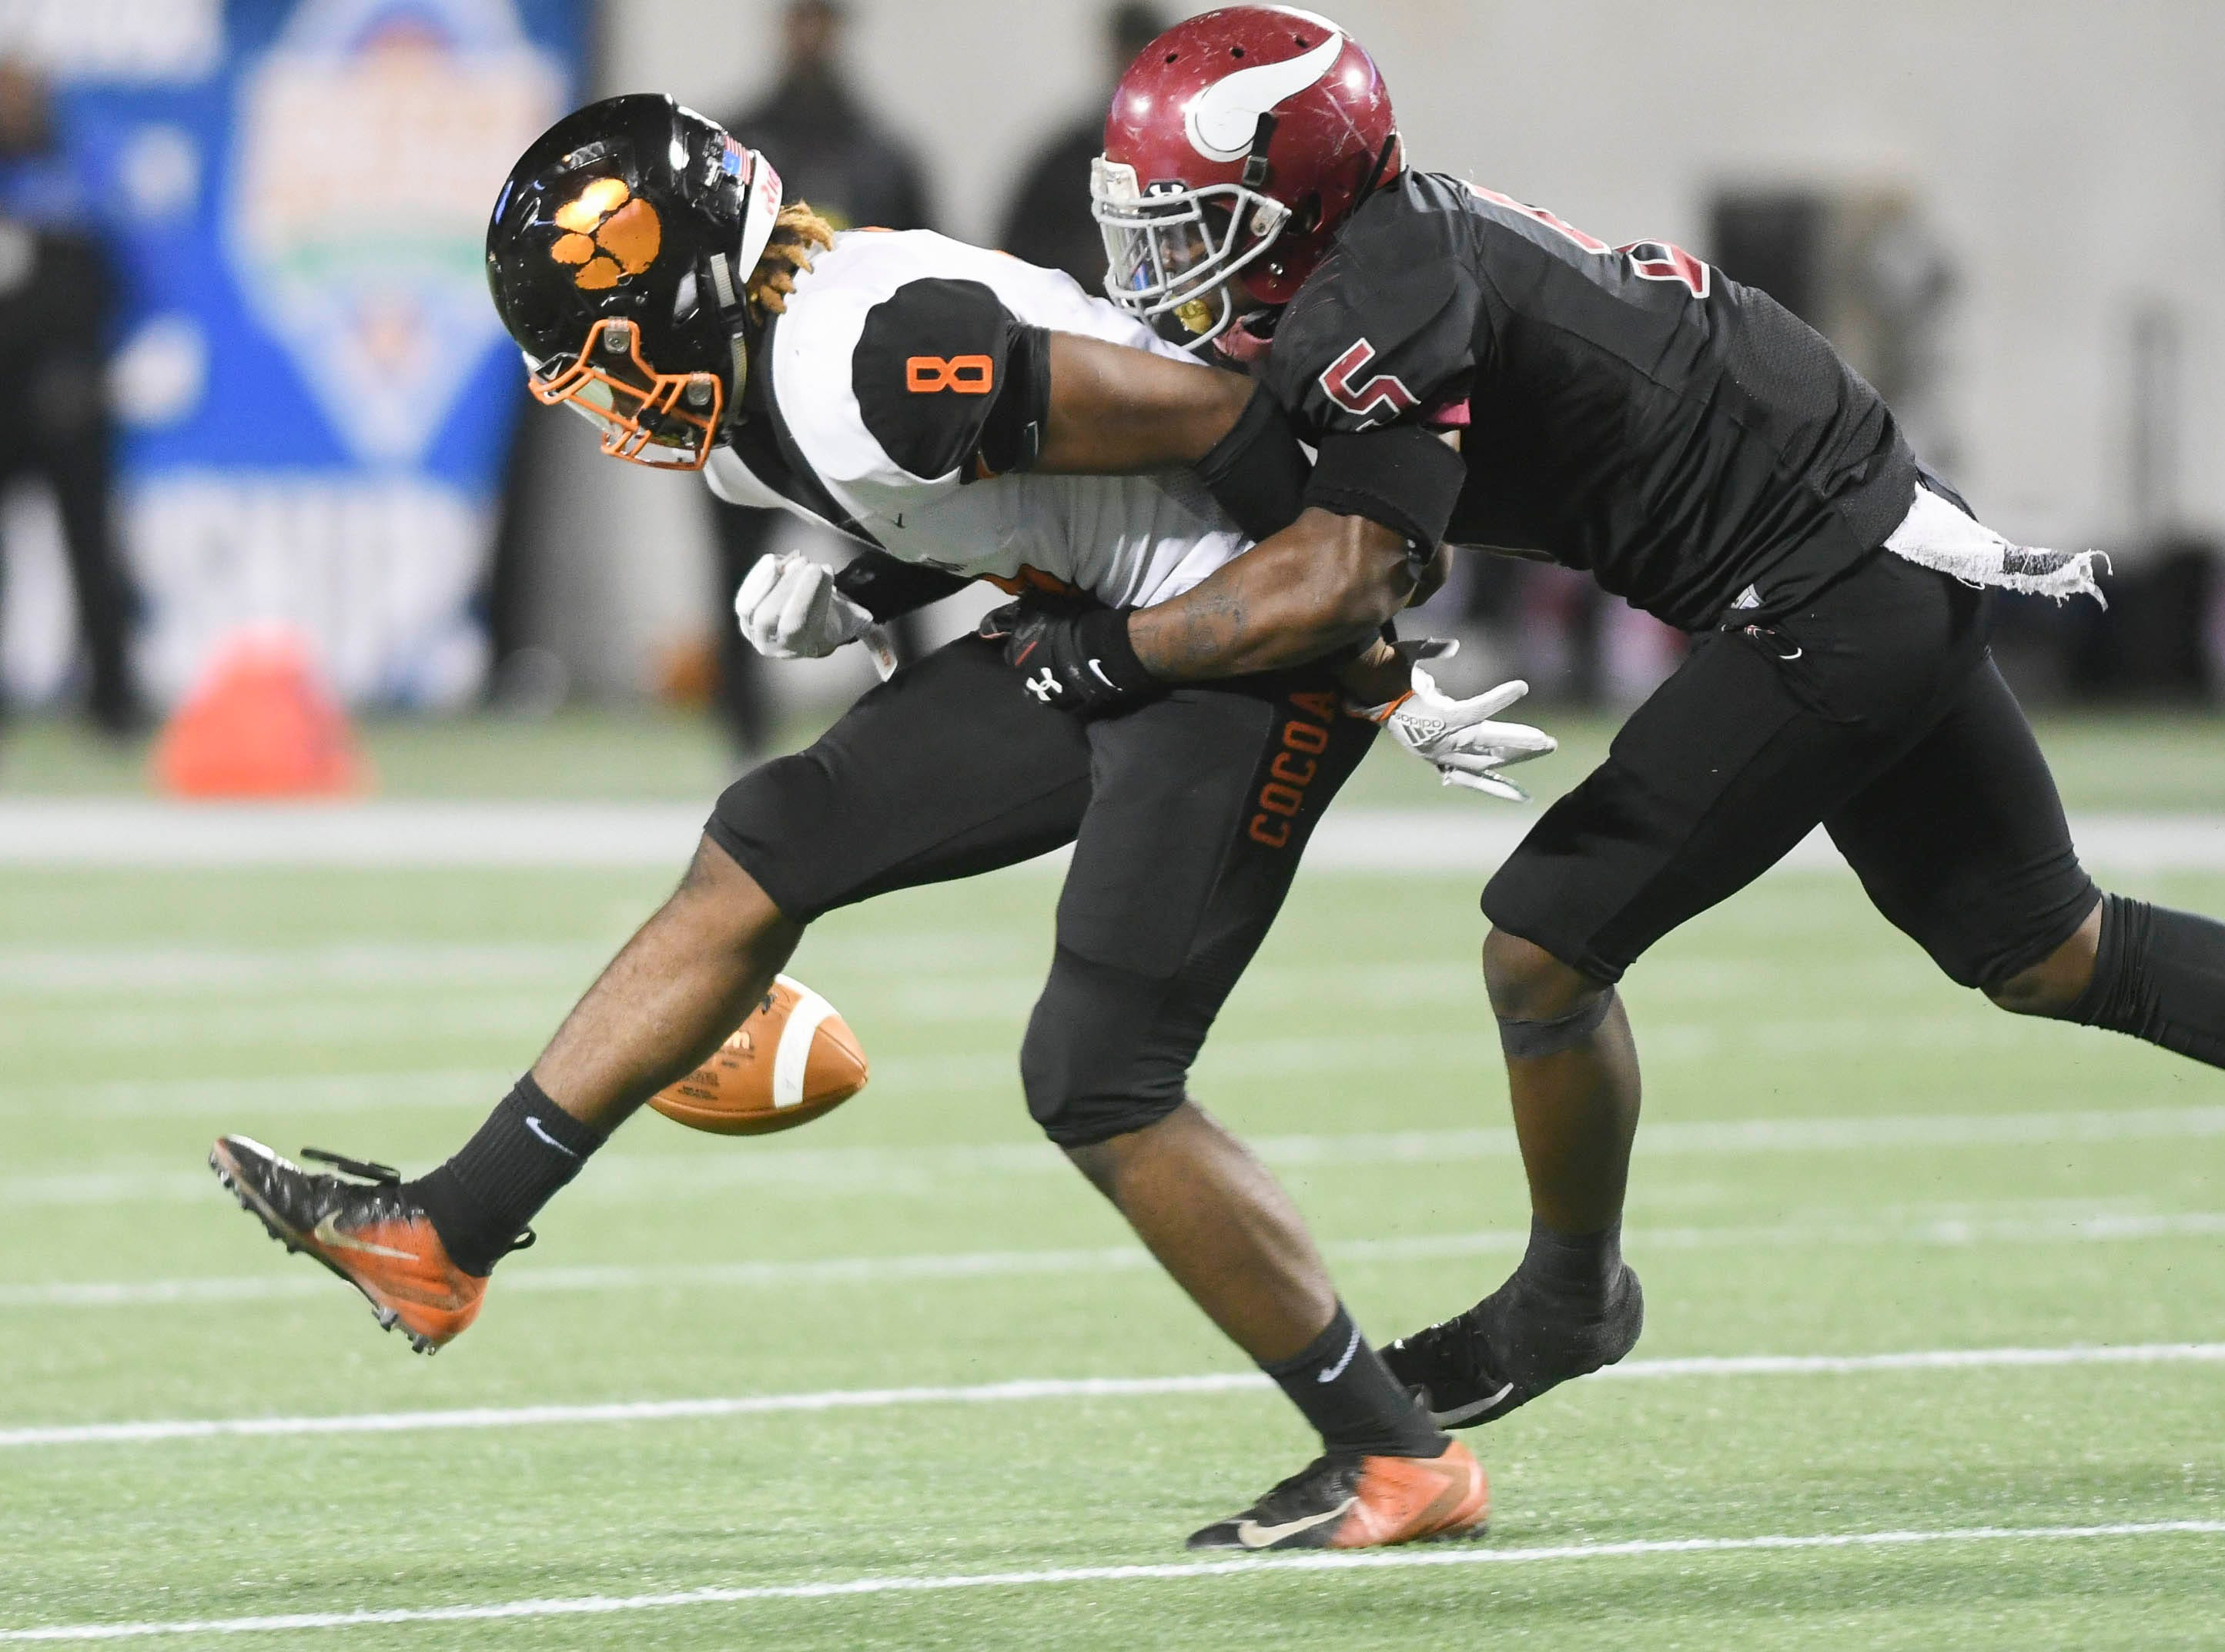 Javon Bonsell of Raines (5) forces Caziah Holmes of Cocoa to fumble the ball during Thursday's Class 4A football state championship.